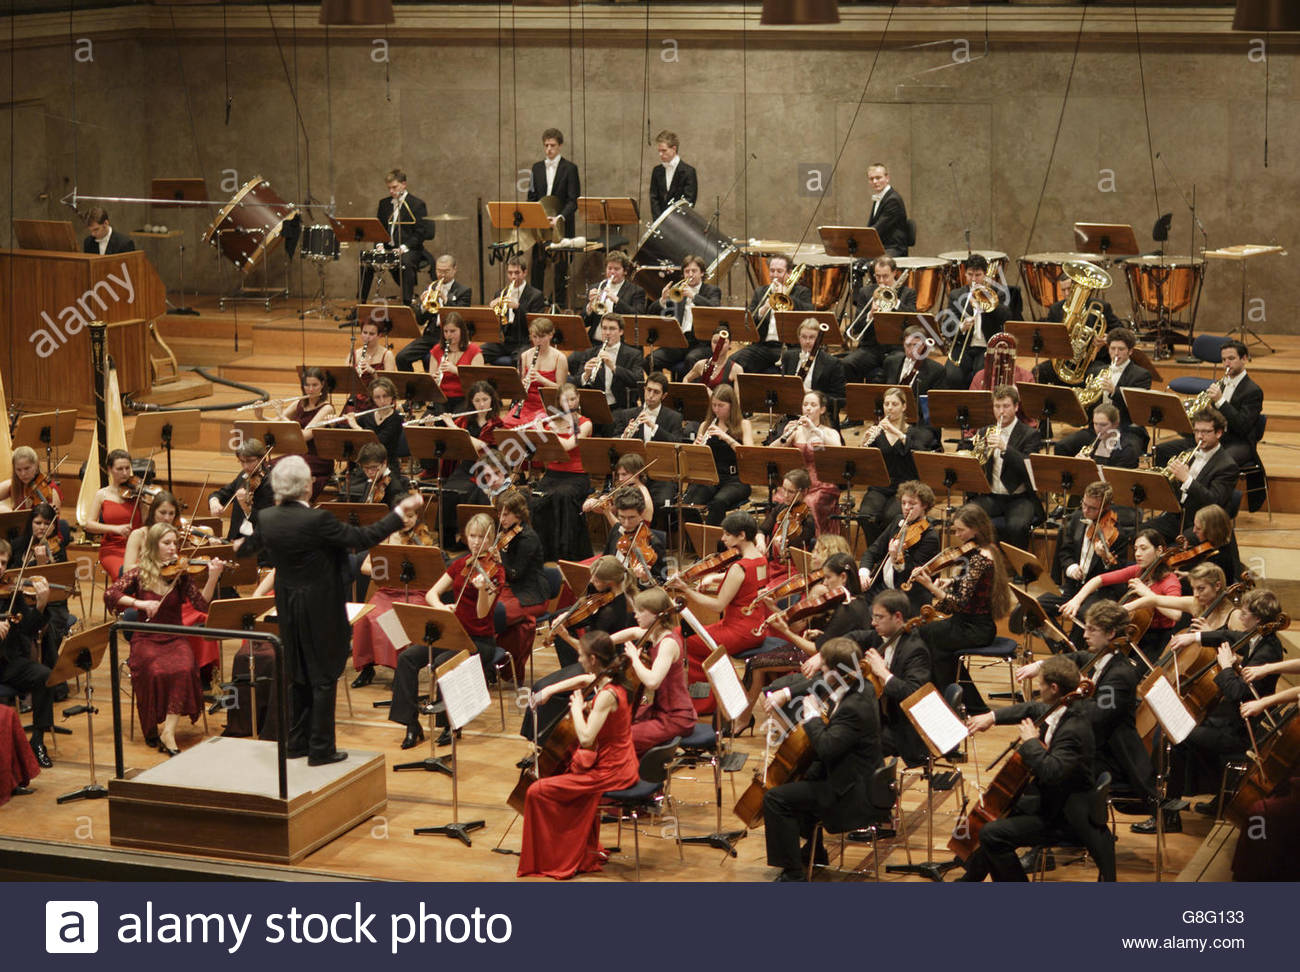 Youth orchestra, Herkulessaal, Residenz, Munchen, Bavaria, Germany - Stock Image